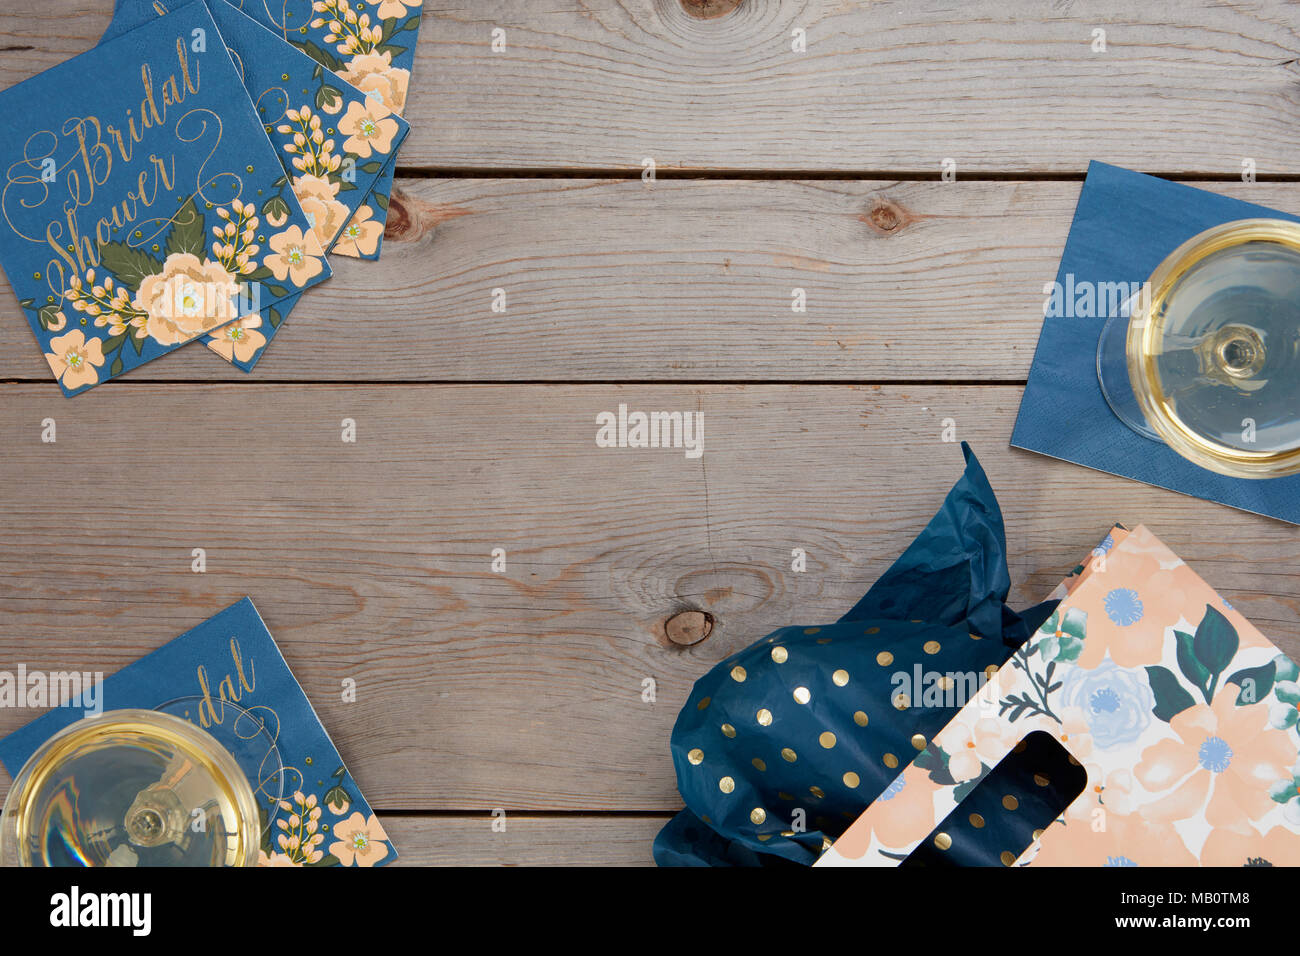 blue floral rustic bridal shower table decorations with wine glass and gift bag on wooden background